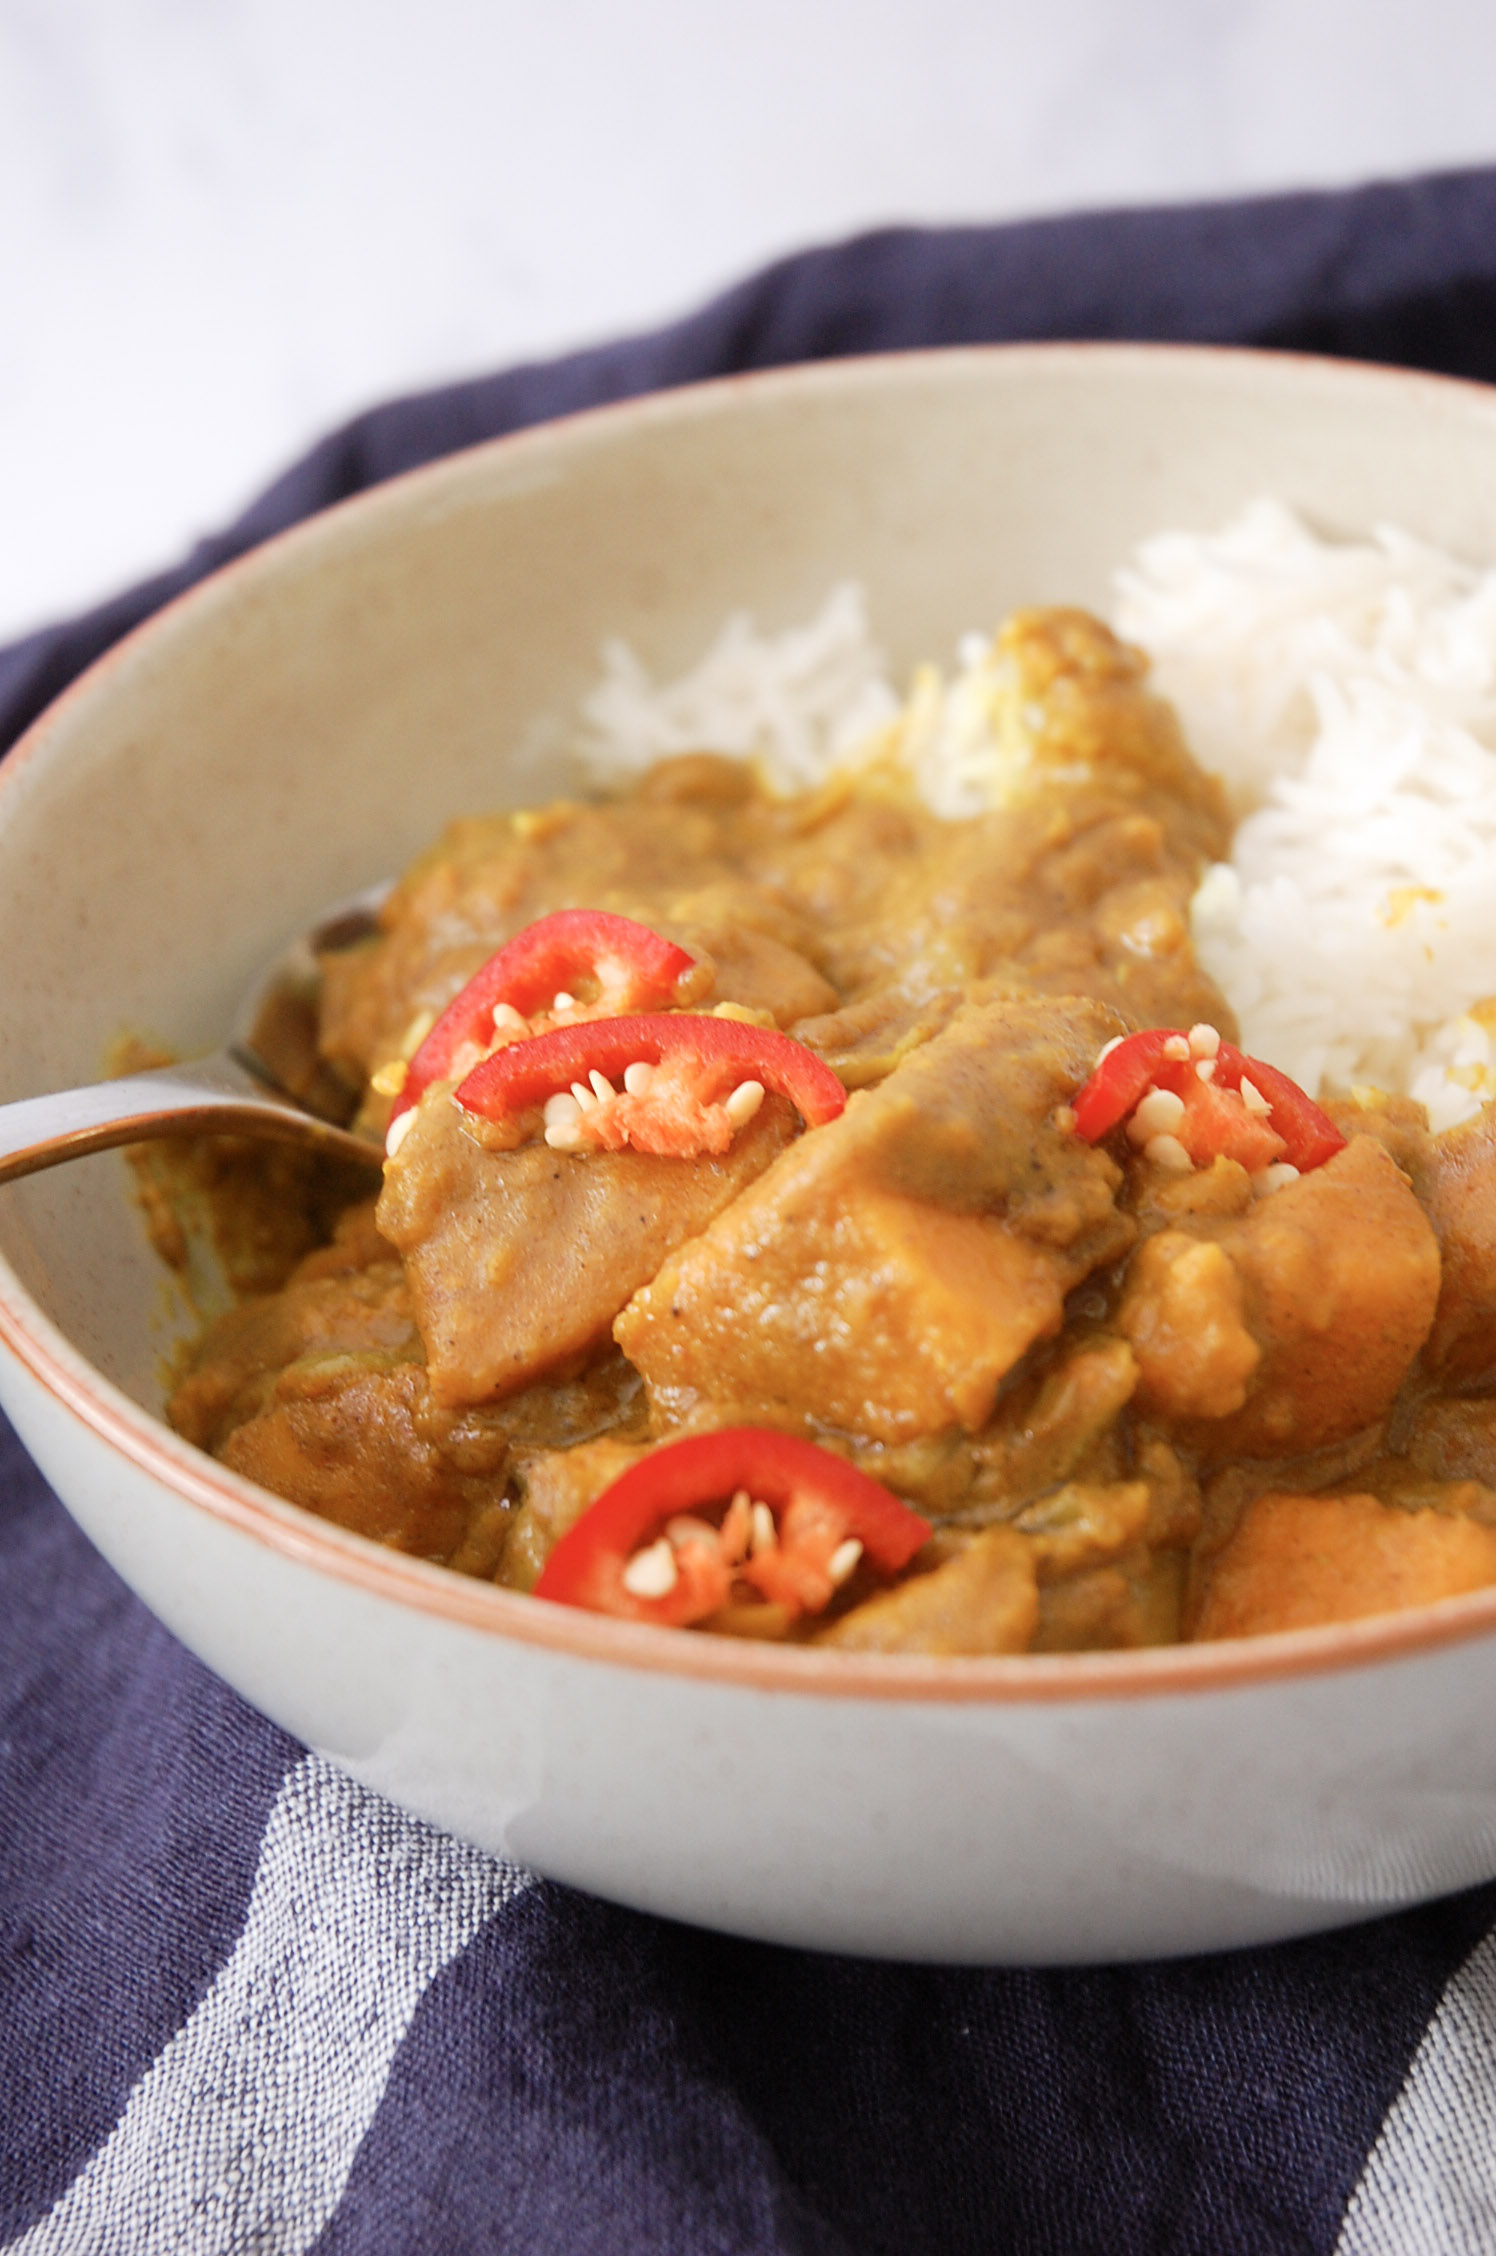 sweet potato curry in a grey bowl on top of a navy linen